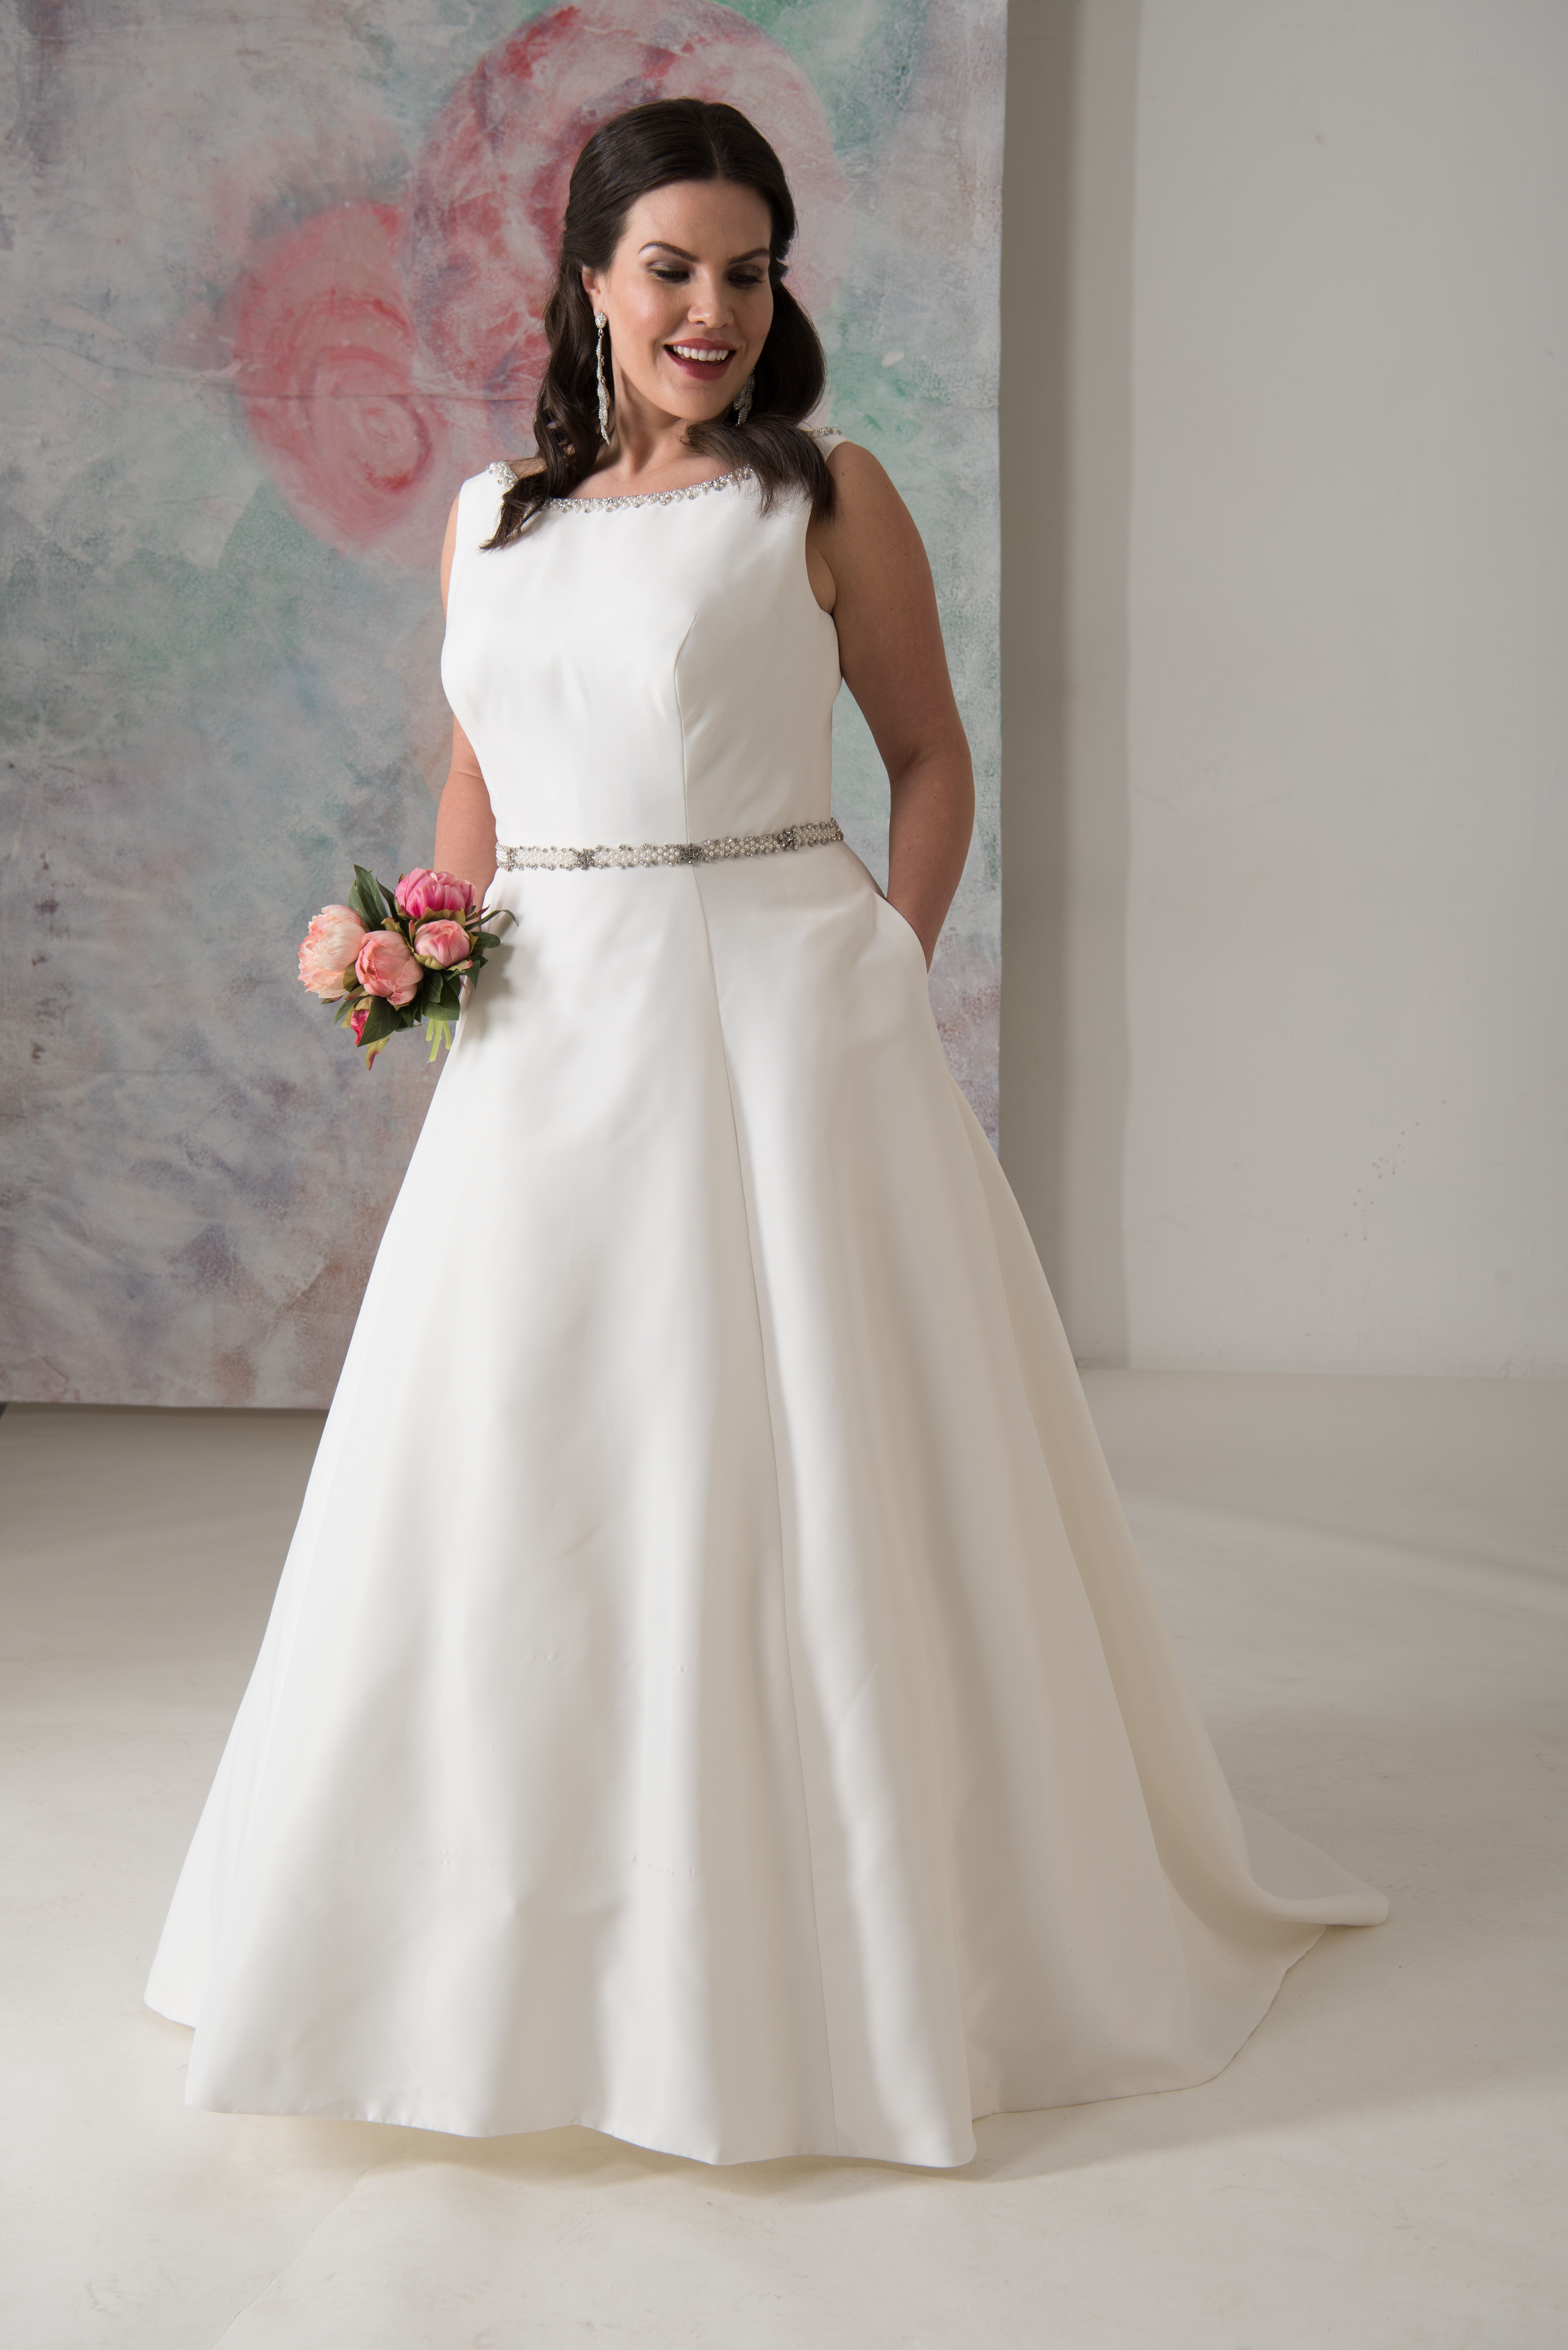 2a0e8c8ac68 Alexandria by Callista. Available in store now. Visit our website to make  an appointment